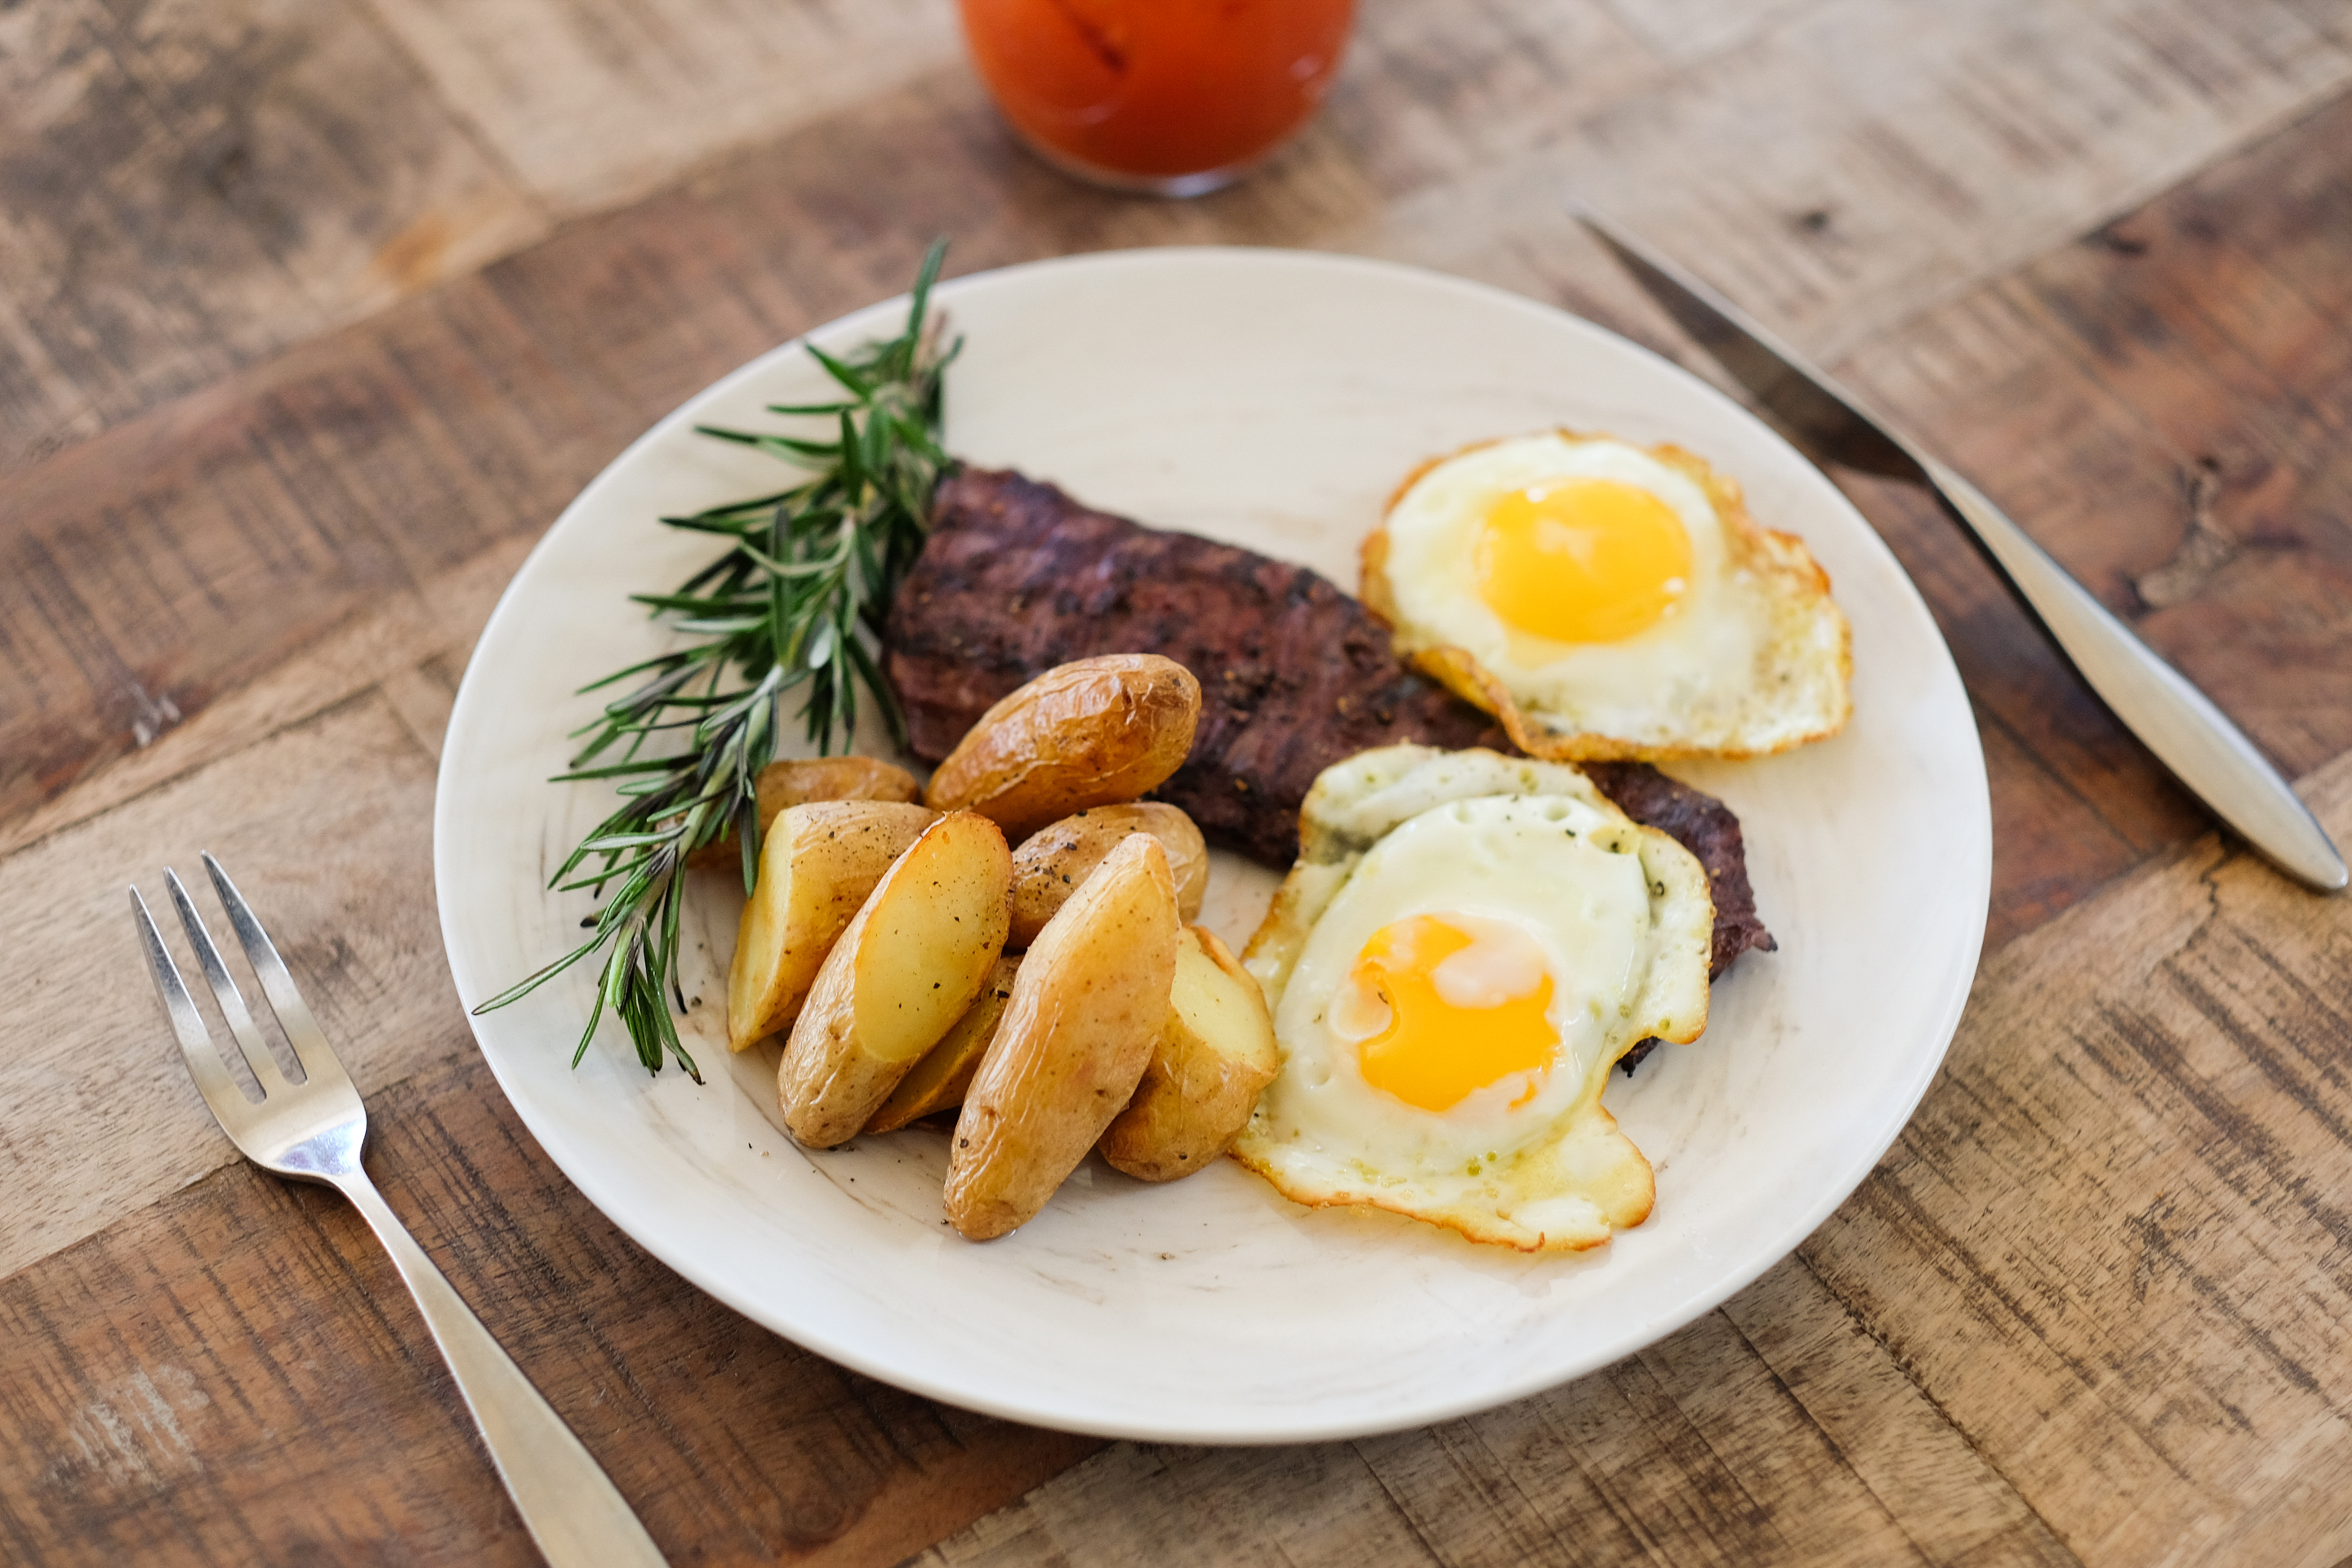 Image of Sunday Brunch served at Via Verdi, Italian restaurant in Miami. 8 oz skirt steak, fried eggs, grilled rustic potatoes, mustard sauce.